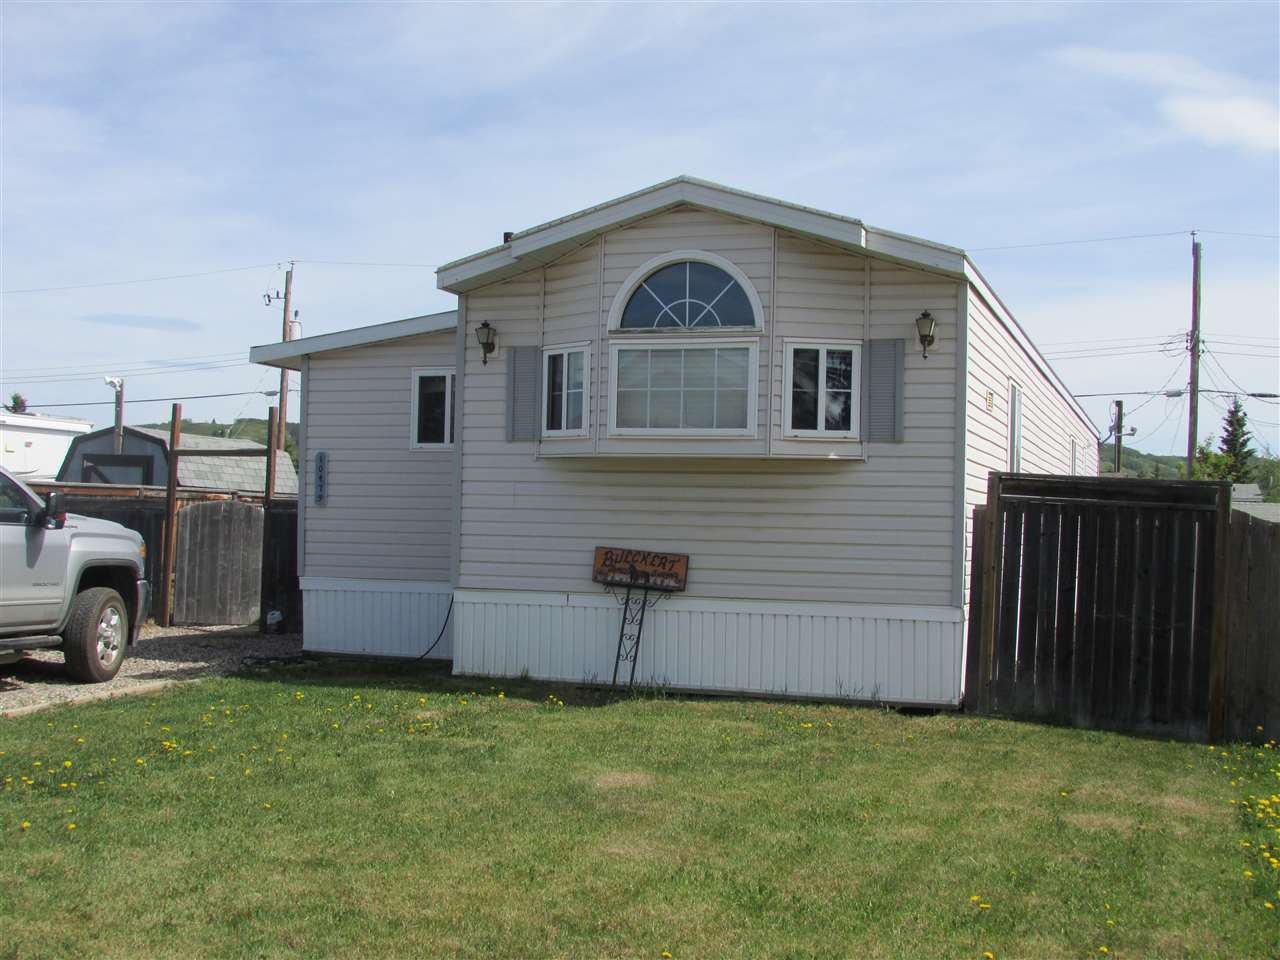 Main Photo: 10479 99 Street: Taylor Manufactured Home for sale (Fort St. John (Zone 60))  : MLS®# R2272115